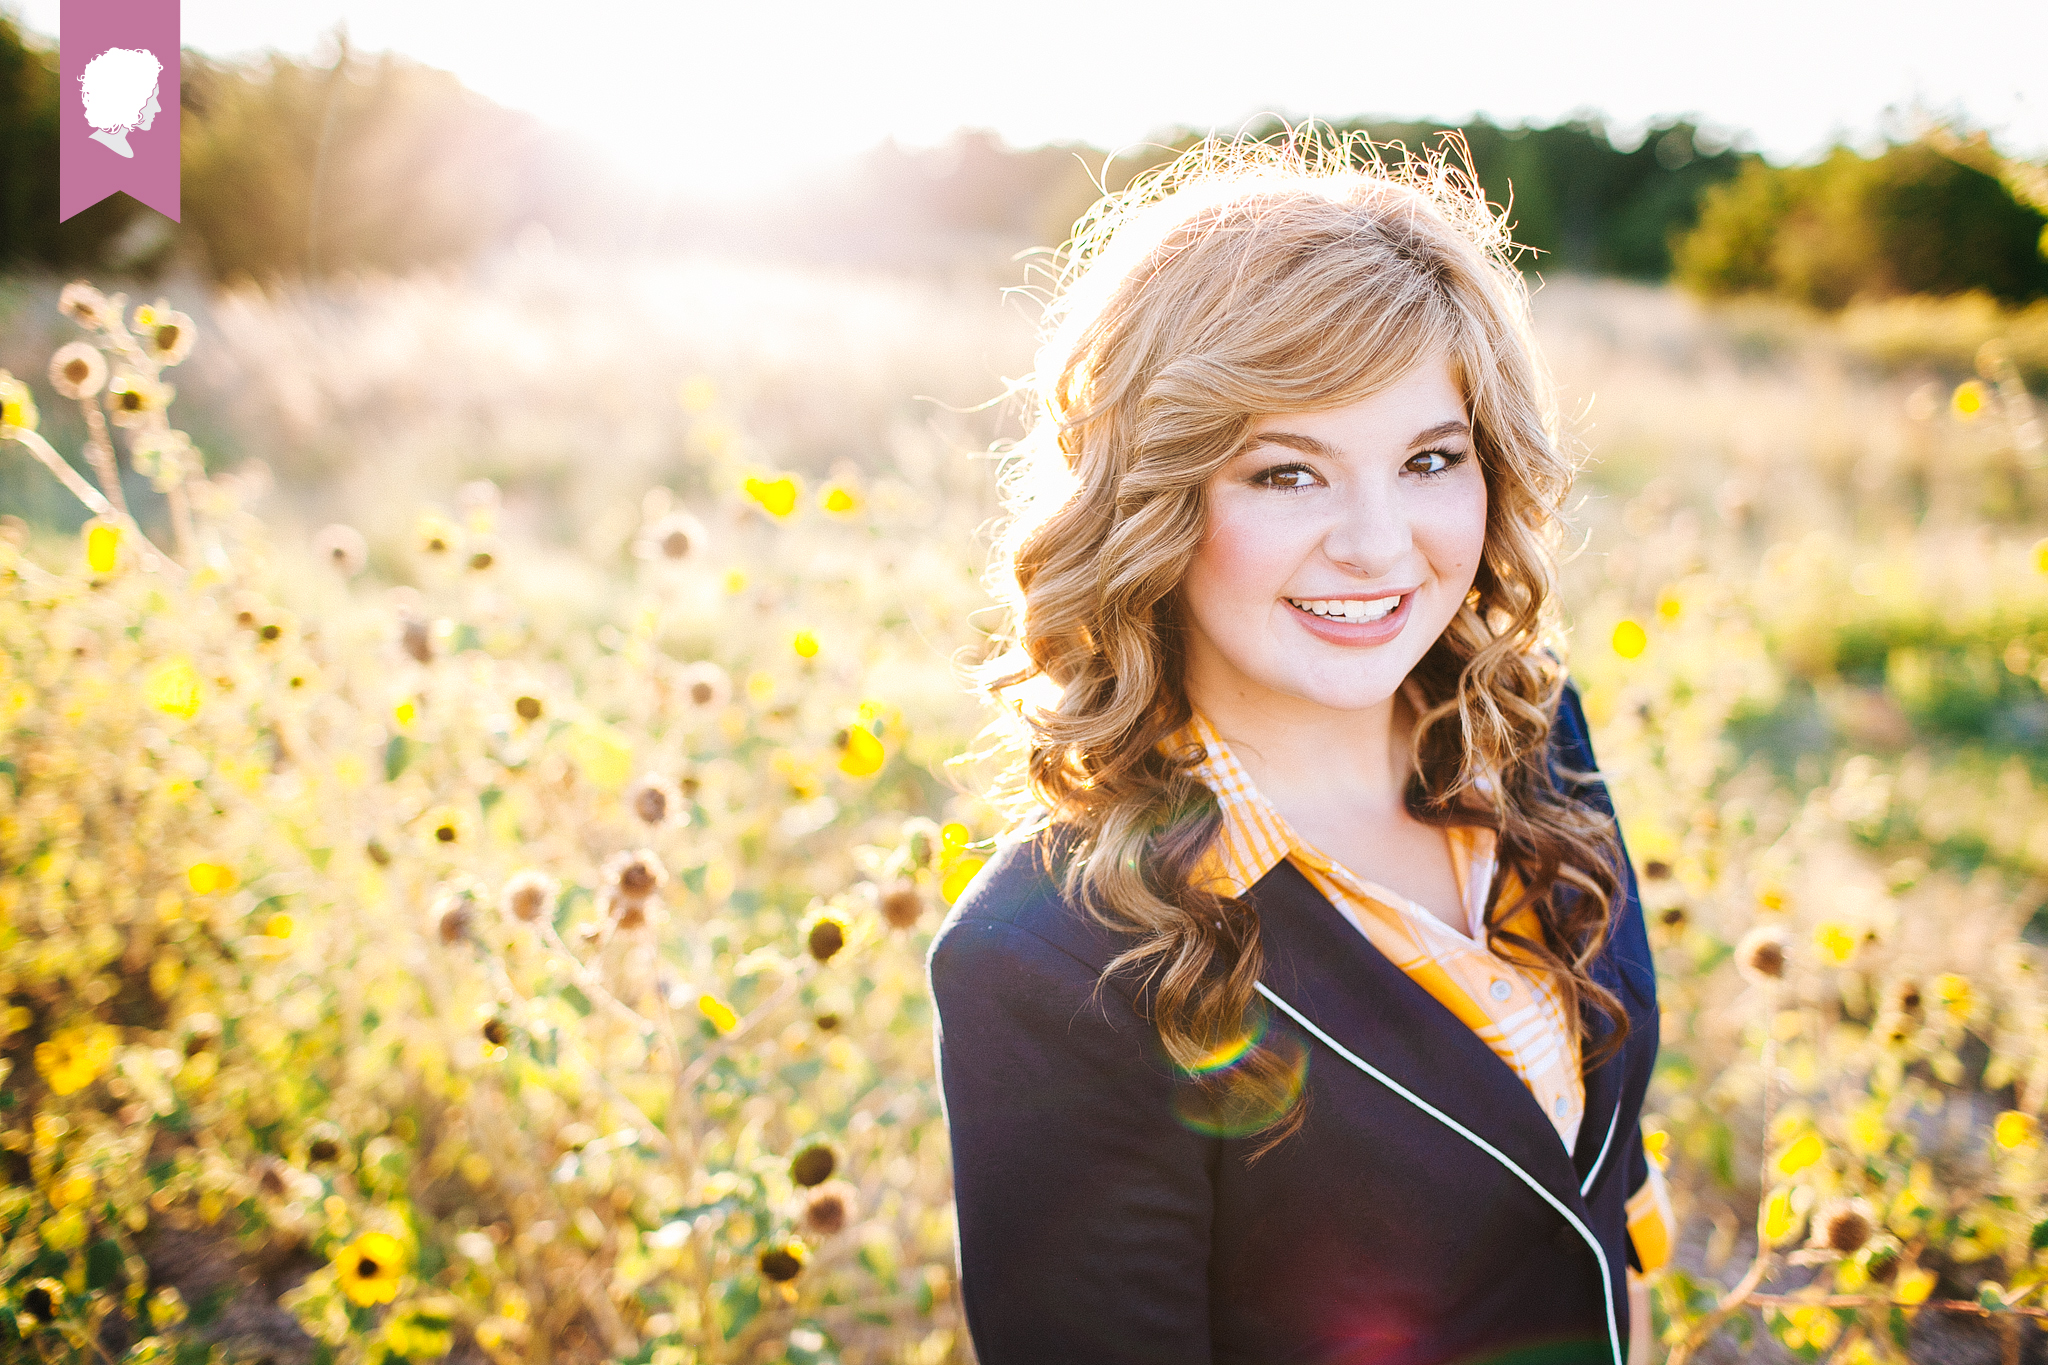 Portrait photo-shoot with natural lighting in Duncan, Oklahoma.